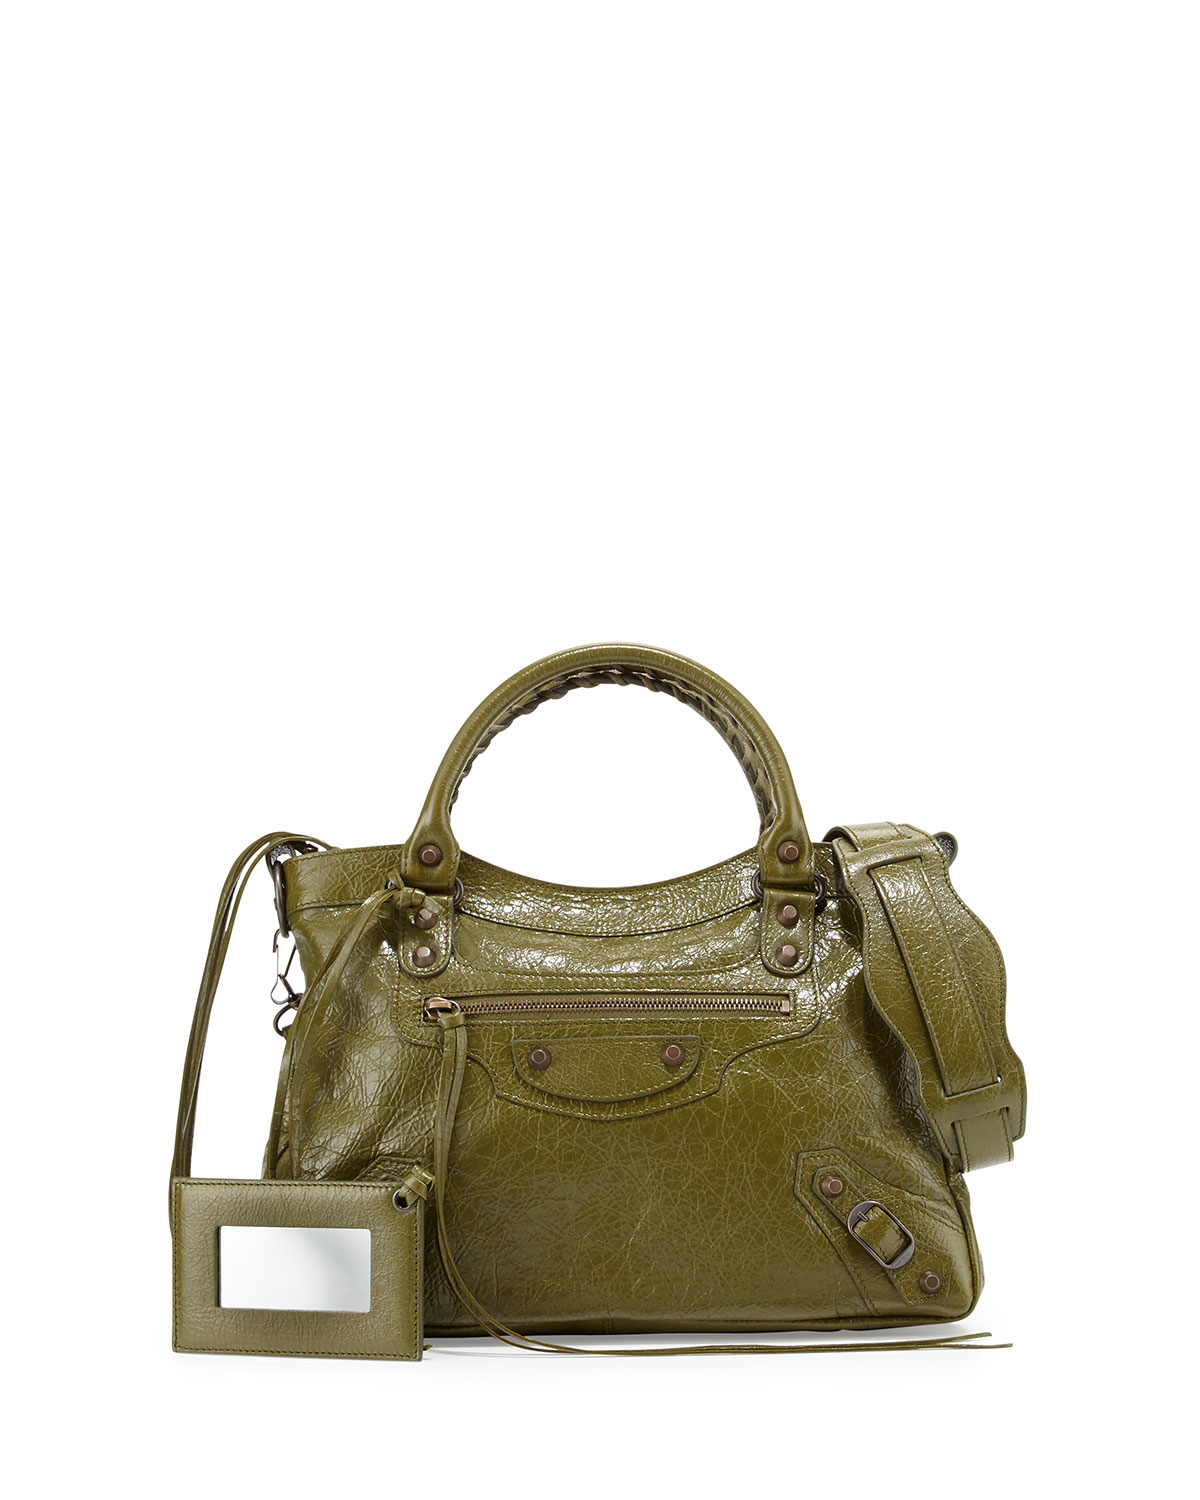 Classic City Town Lambskin Tote Bag, Olive Green - Balenciaga